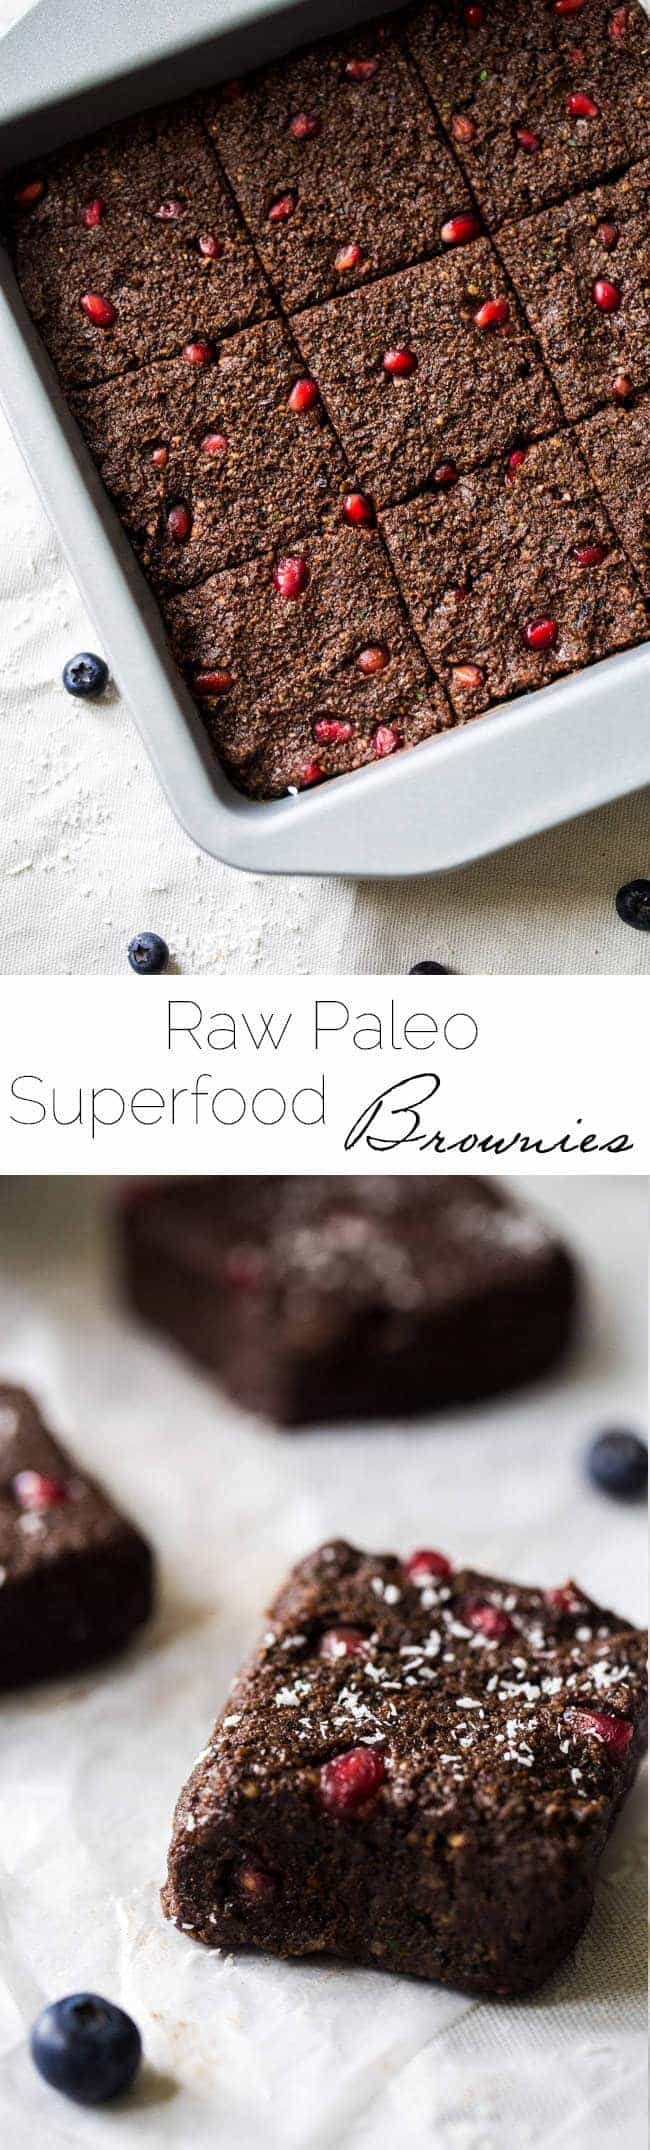 Superfood Raw Paleo Brownies - Made in the food processor and are a no-bake, healthy treat that is loaded with superfoods and protein! Easy and delicious! | Foodfaithfitness.com | @FoodFaithFit